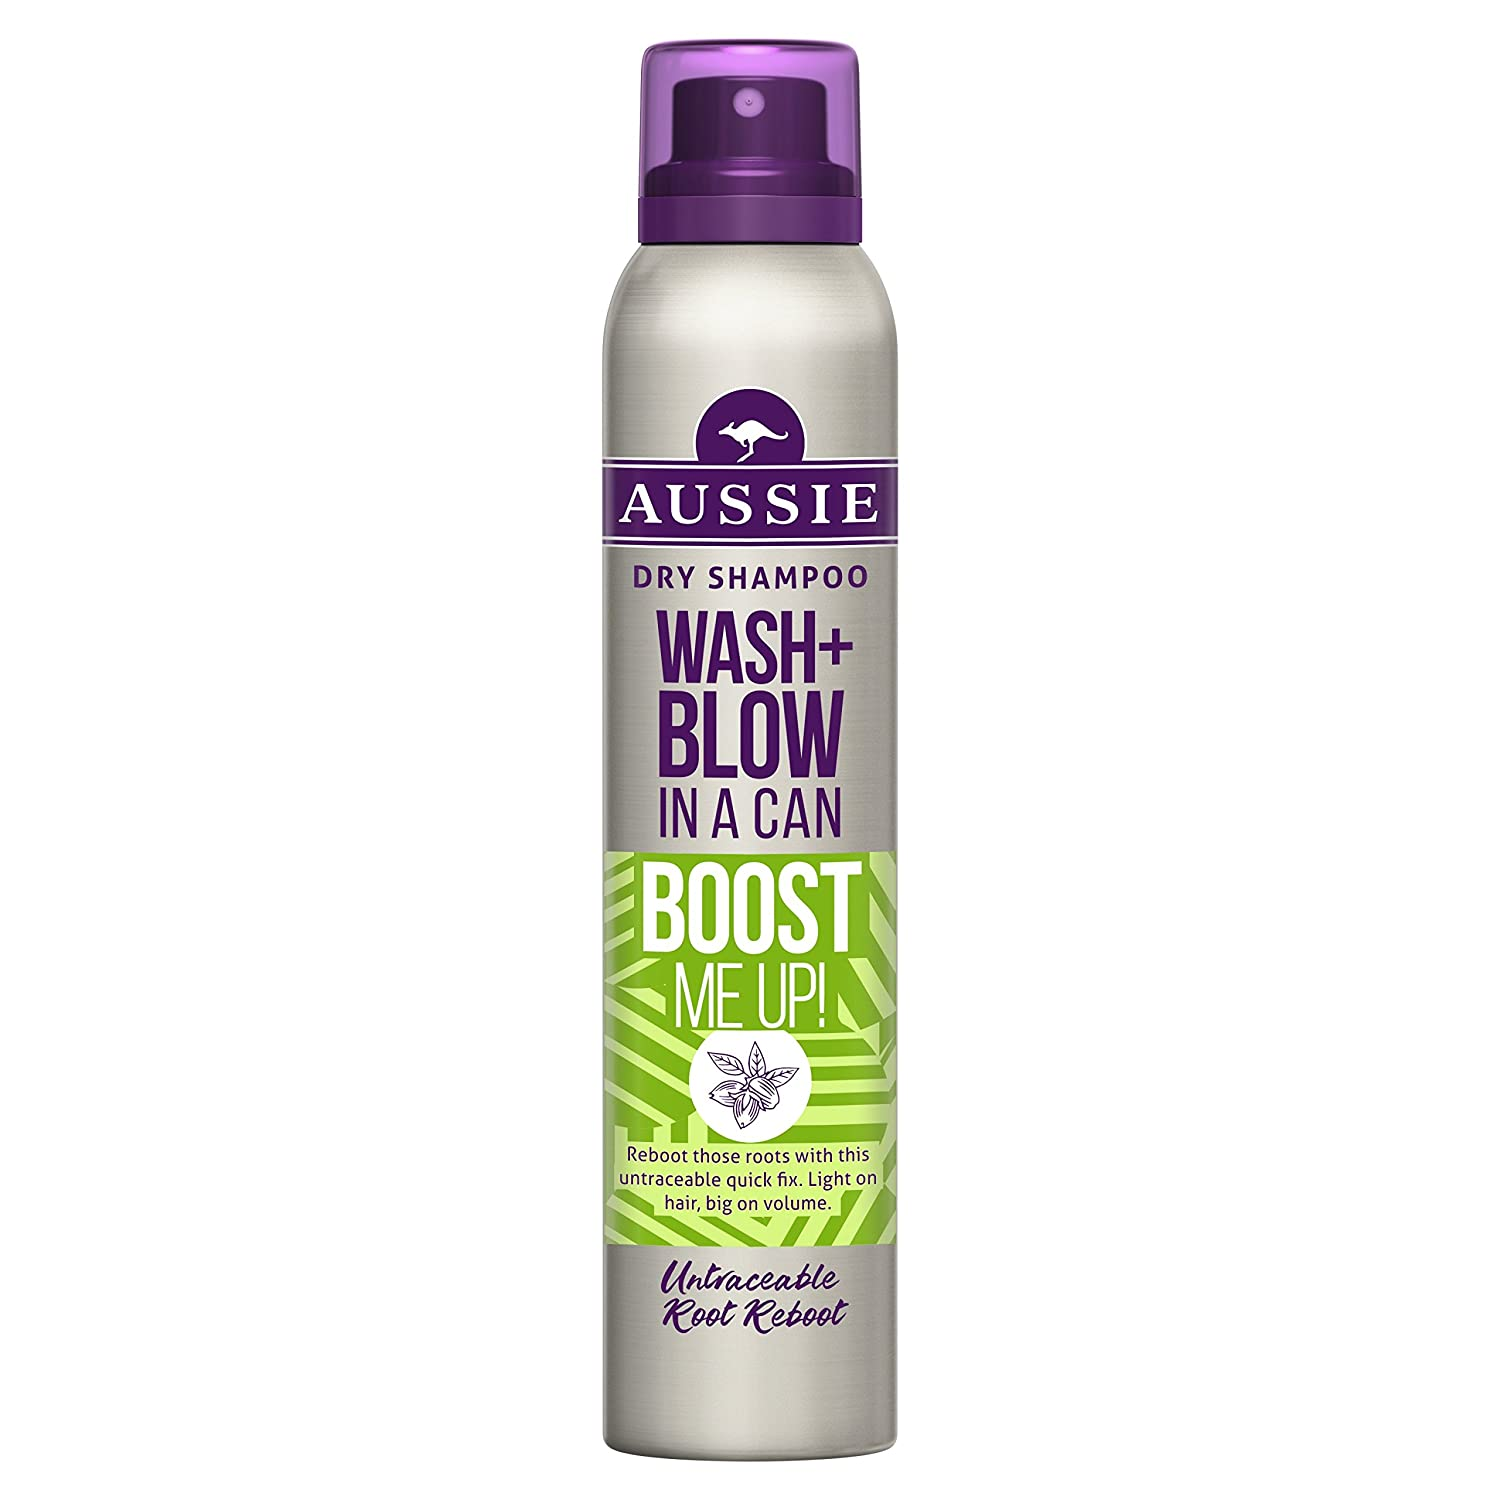 Aussie Miracle Dry Shampoo Aussome Volume for Fine, Limp Hair, 180 ml Procter & Gamble 106875420